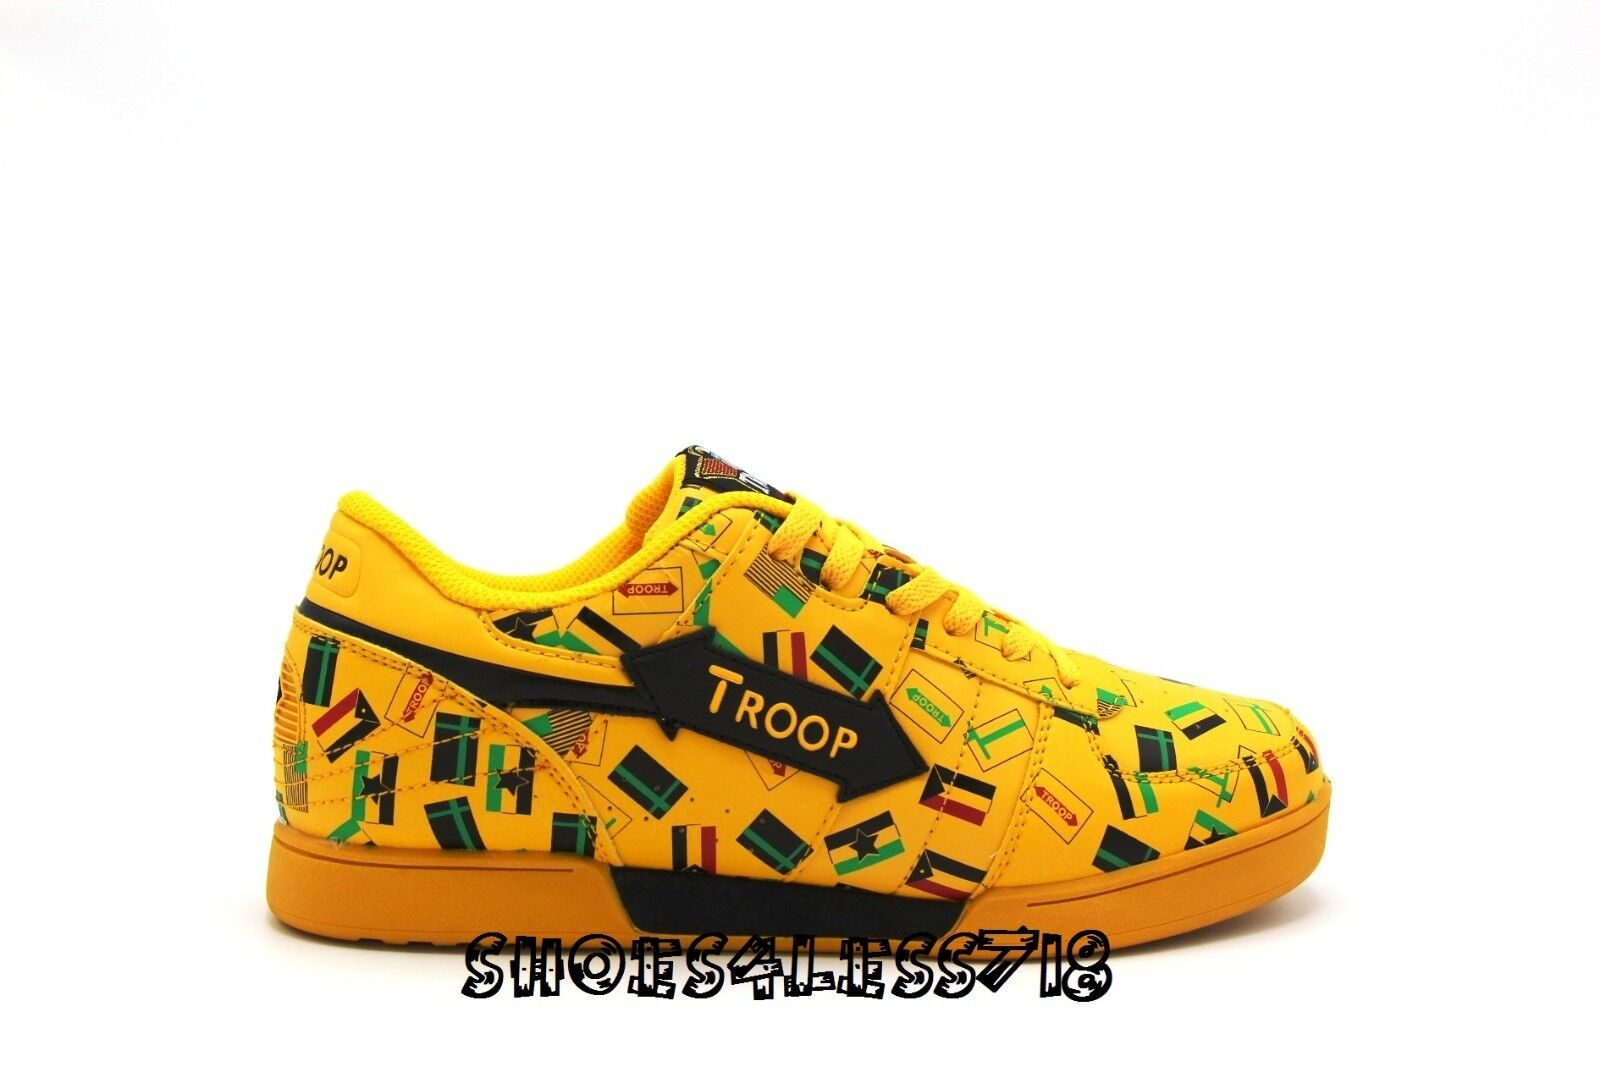 NEW TROOP CROWN LIMITED EDITION OLD SCHOOL VINTAGE YELLOW FLAG LOW TOP SNEAKERS